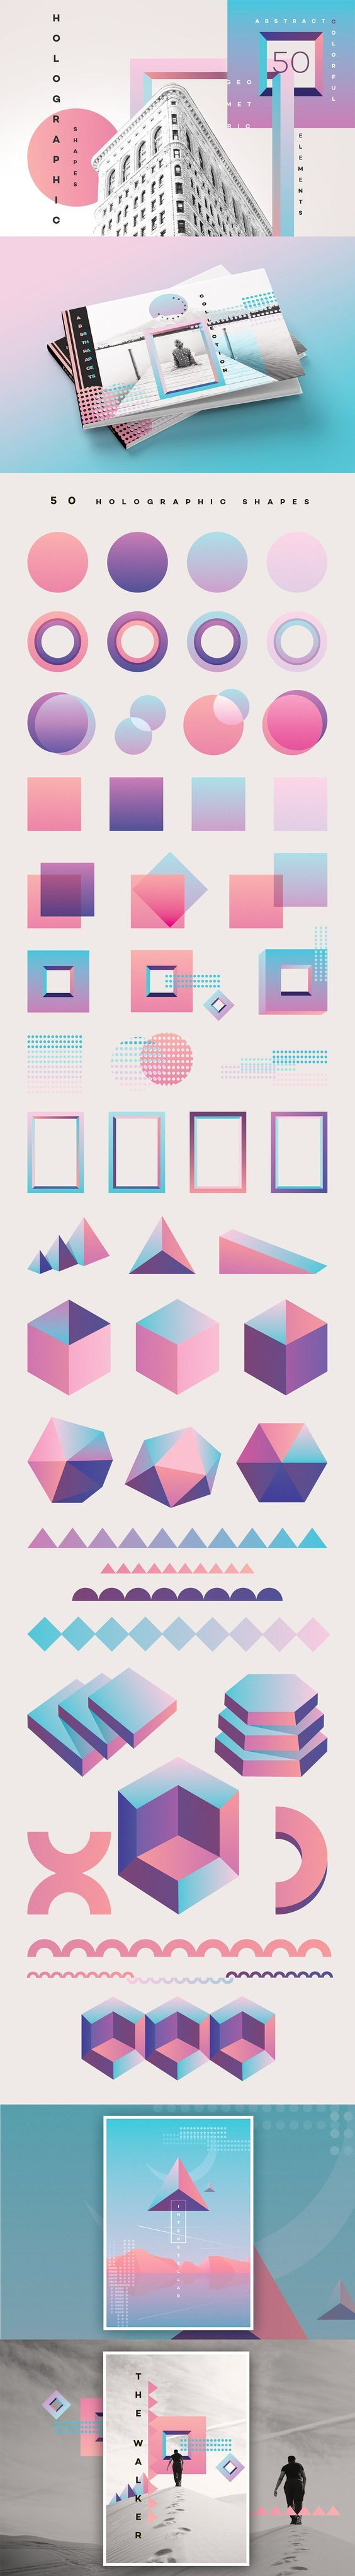 50 Holographic Shapes for posters, invitations, flyers, business cards and more: